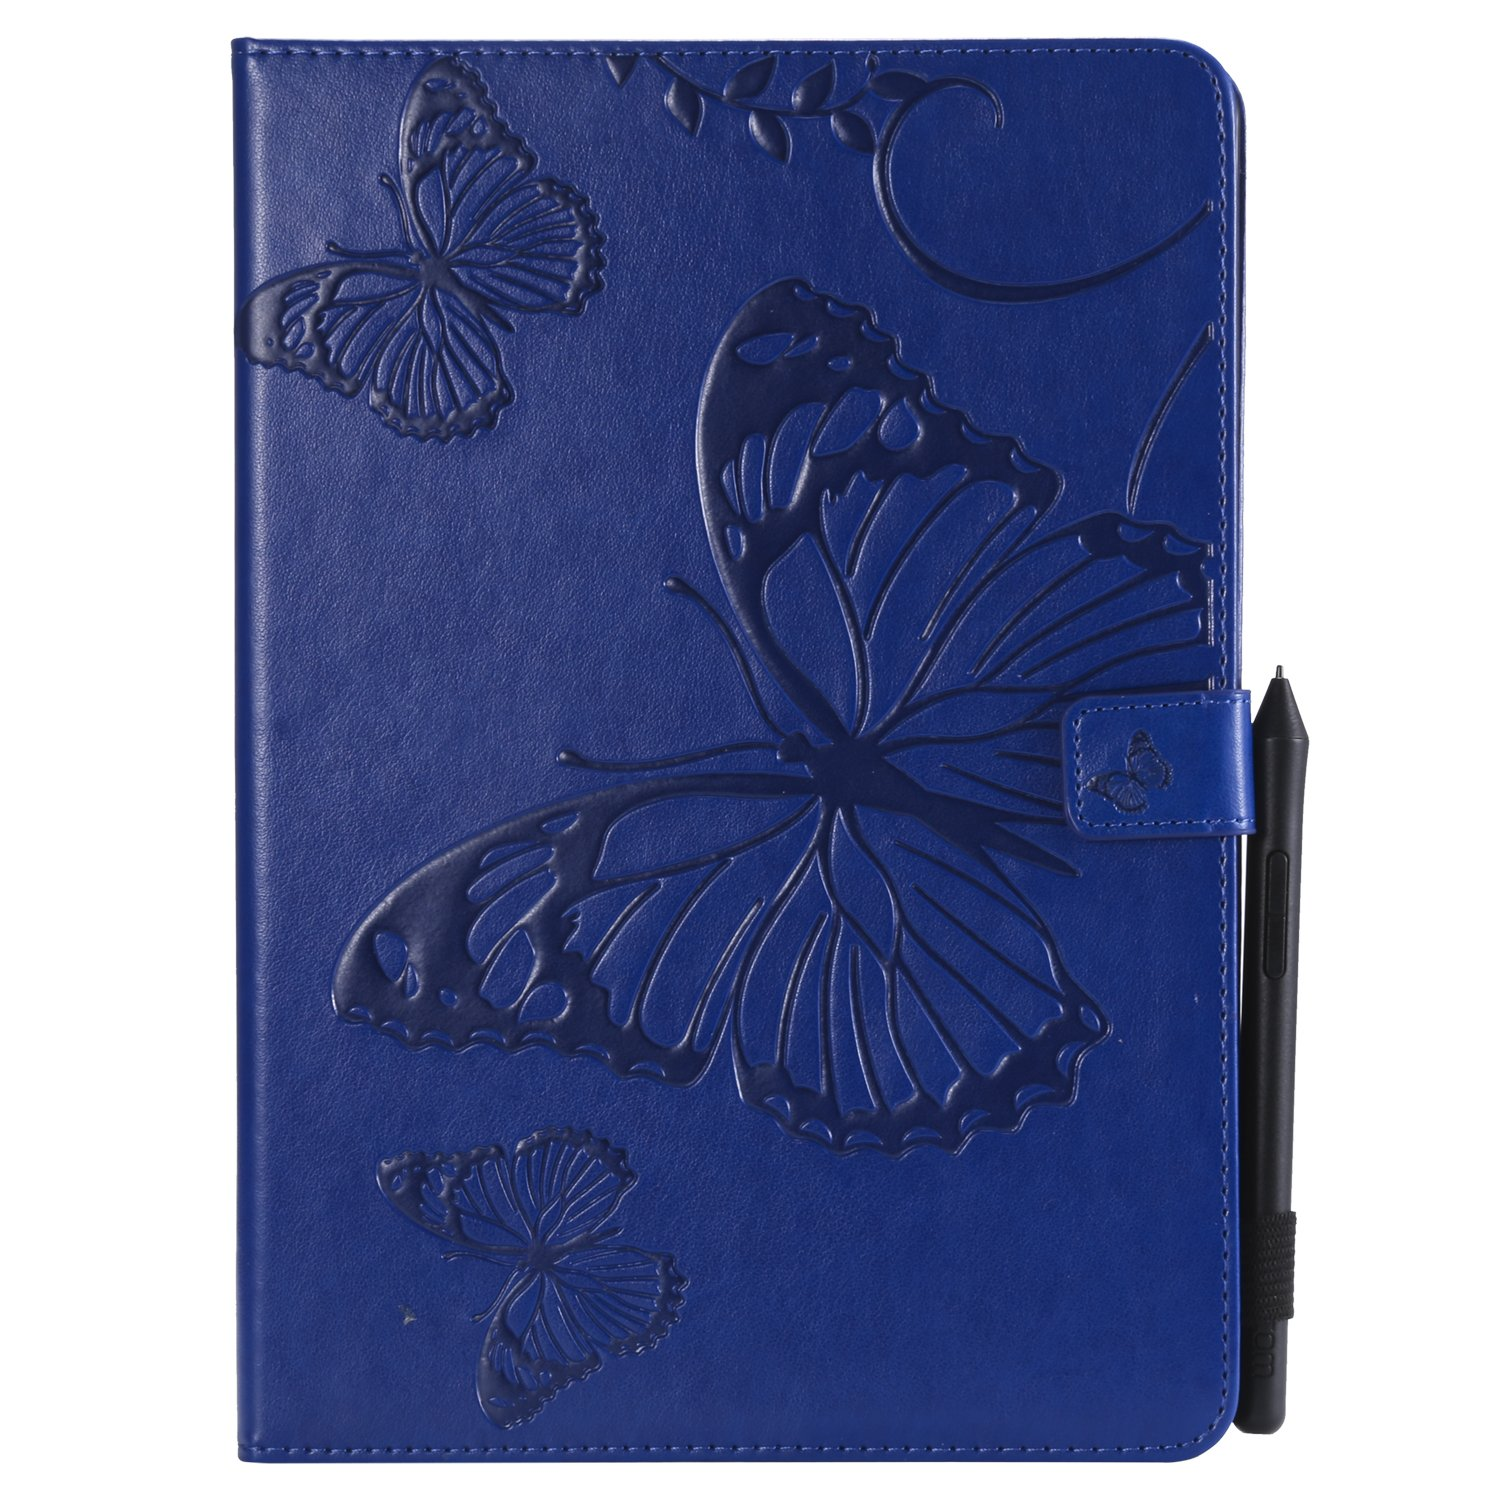 Bear Village iPad Pro 10.5 Inch Case, Butterfly Embossed Anti Scratch Shell with Adjust Stand, Smart Stand PU Leather Case for Apple iPad Pro 10.5 Inch, Blue by Bear Village